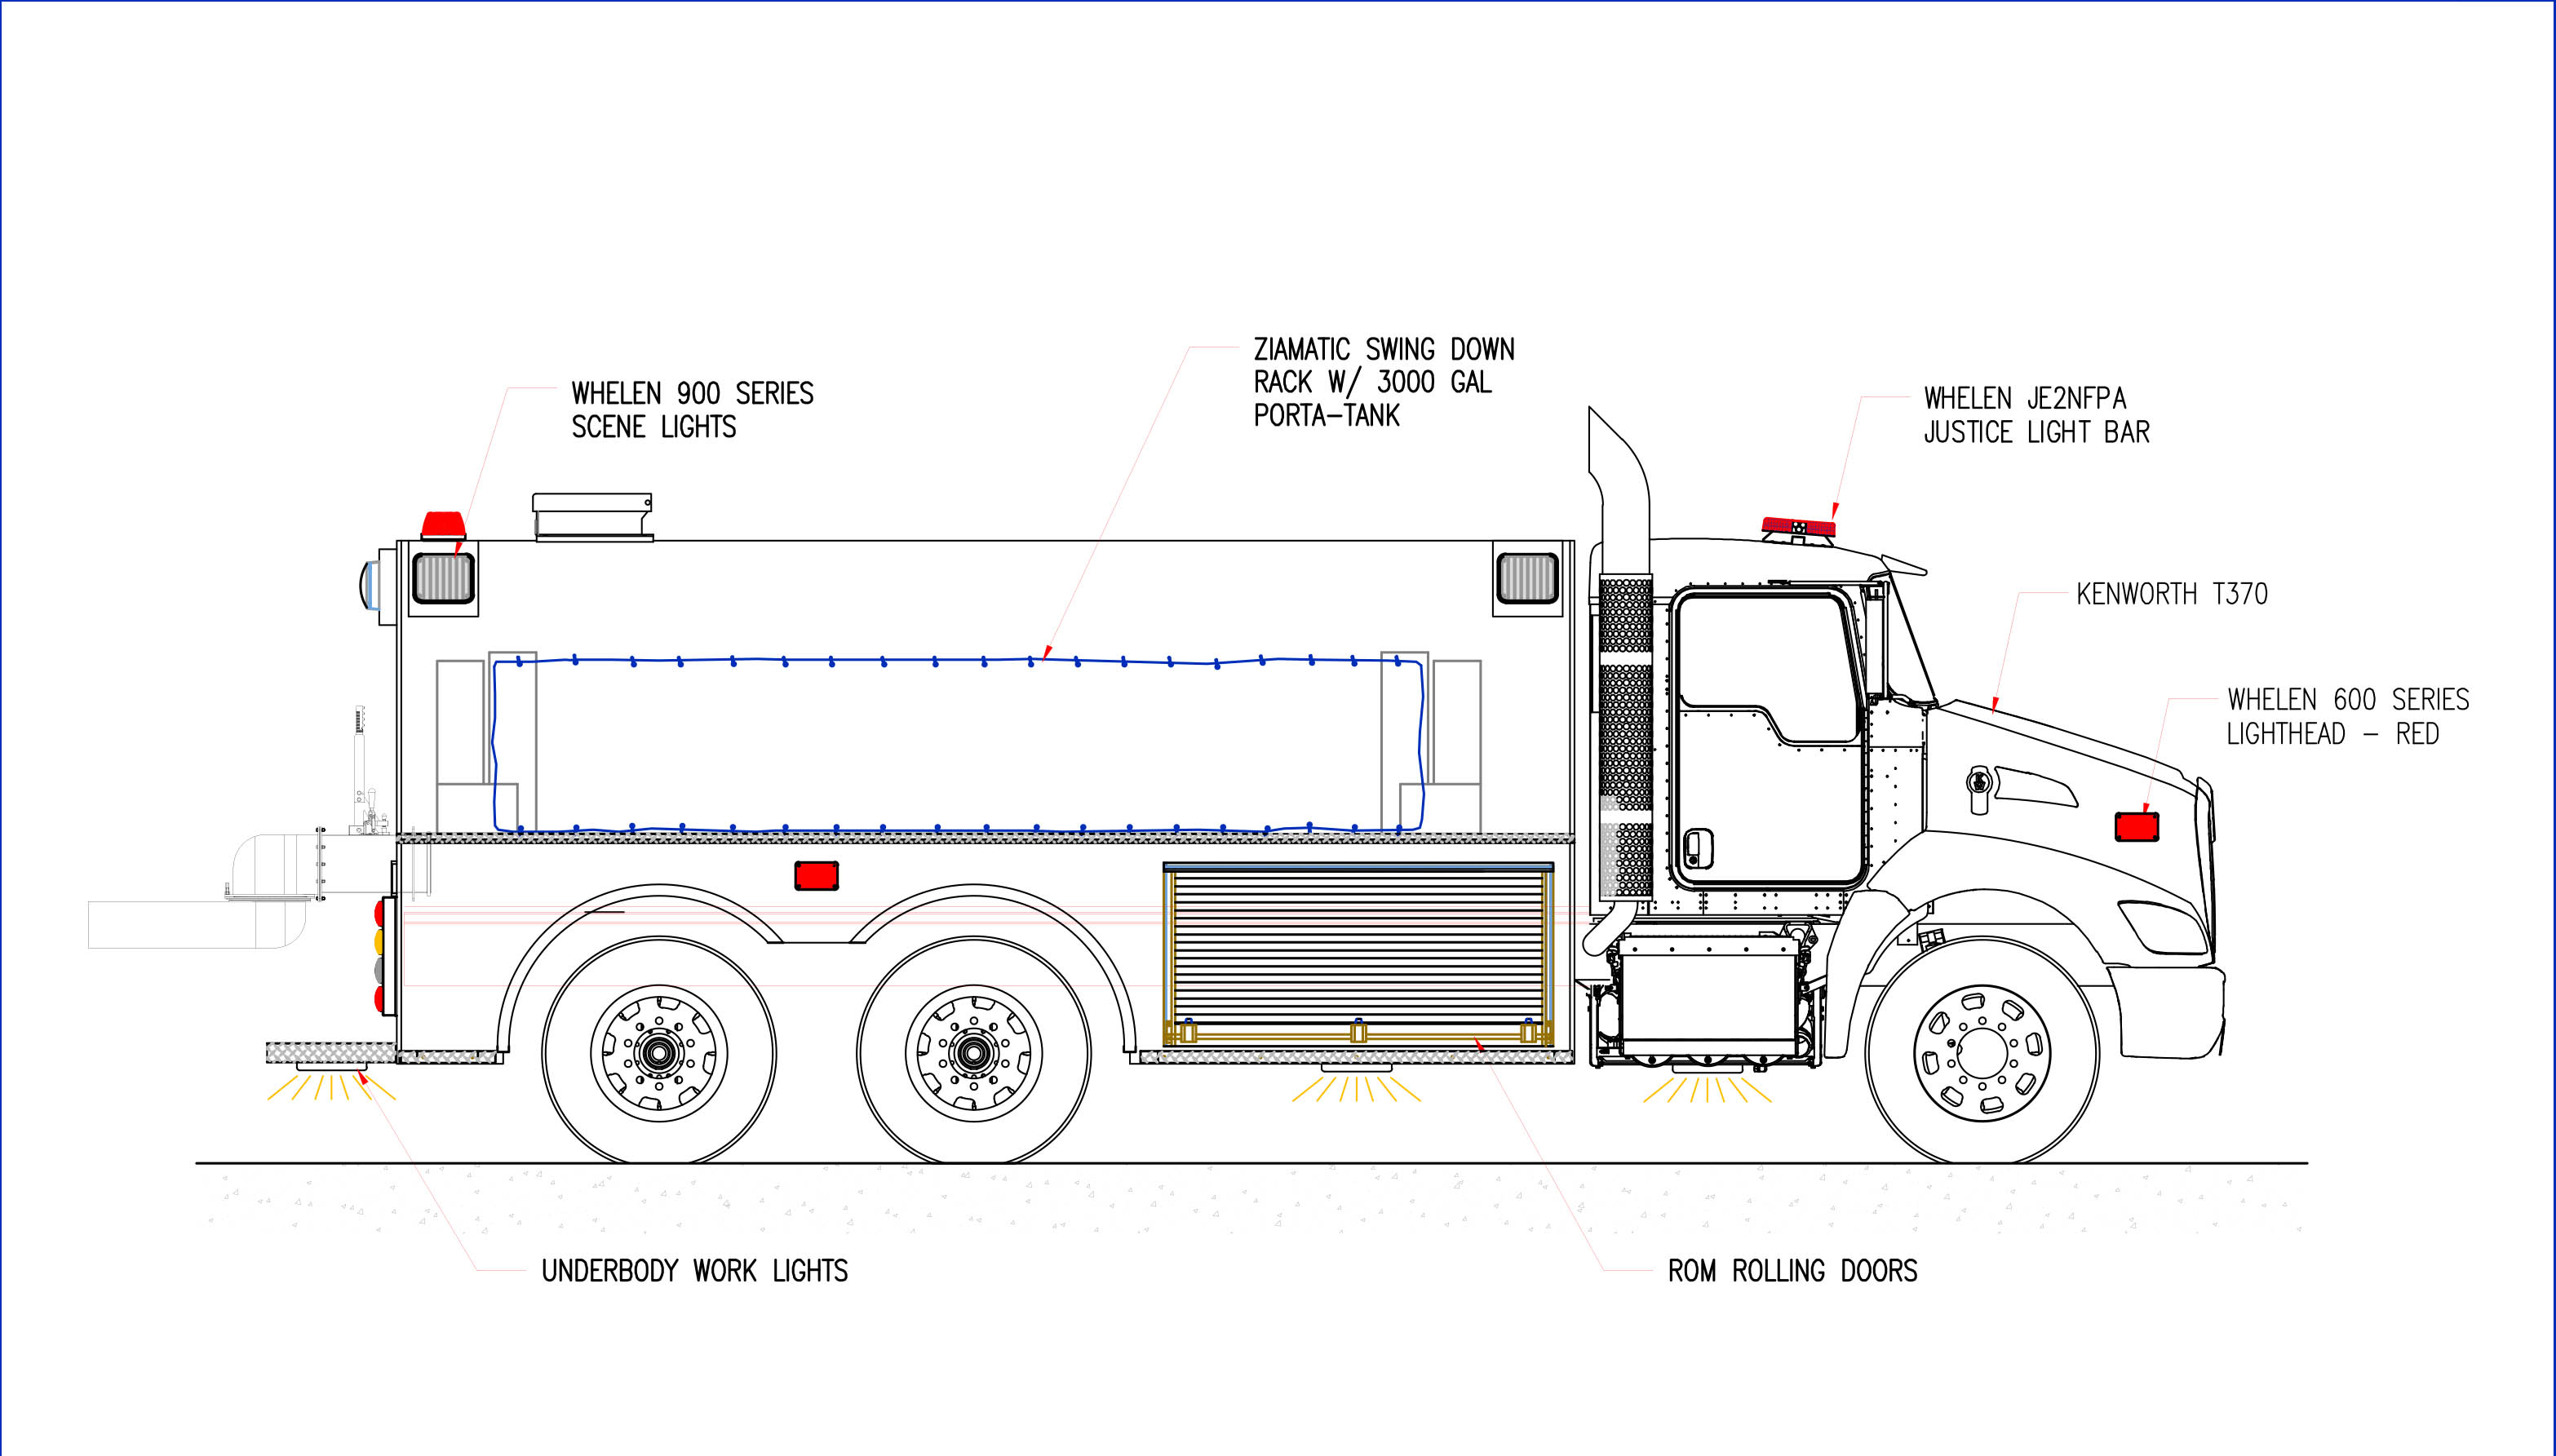 Kenworth T A C Wiring Diagram New Volvo Vnl Fuse Diagram Luxury Volvo Semi Truck Radio Wiring Diagram Of Kenworth T A C Wiring Diagram together with Imgurl Ahr Cdovl D Dy Kyxl B Wyxj Cy Jb Vzhb Zwivqxbwxzexl Rpc Rfc L Zs Ymtevzglhz Jhbxmymtevbxnzntguz Lm   L Imgref additionally S L besides Kenworth T Wiring Diagram Electrical Wiring B F E With Kenworth T Wiring Diagram furthermore Car Door Latch Assembly Diagram Door Locks On Mustang Coupe Ford Mustang Forum. on kenworth t800 fuse panel diagram